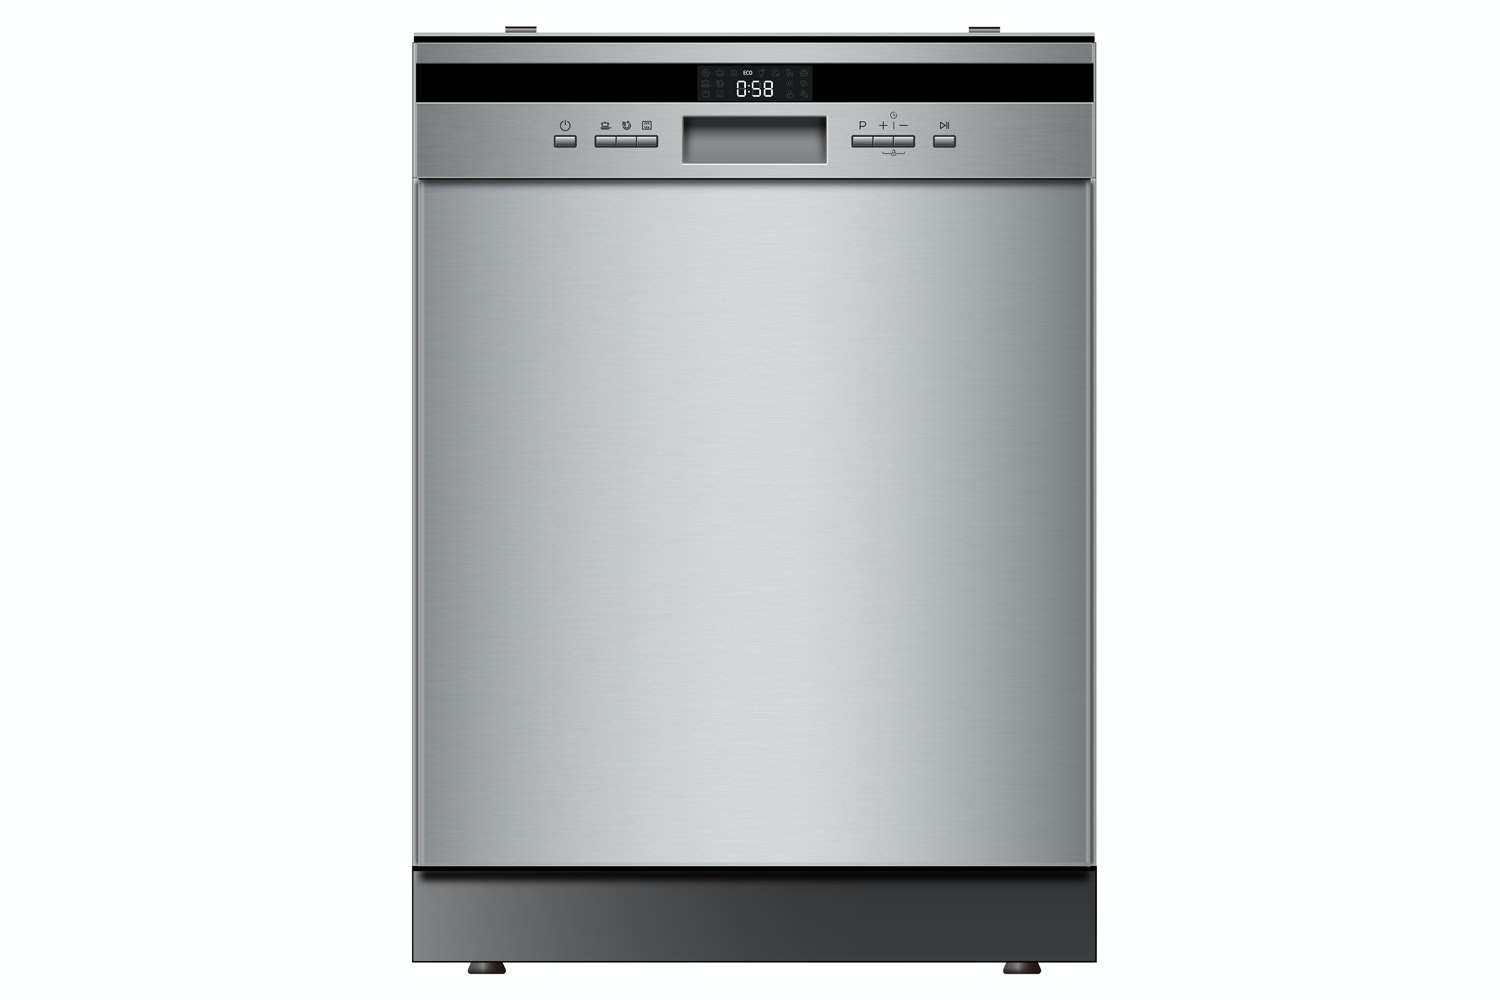 Belling 14 Place Freestanding Dishwasher | BFD814SS